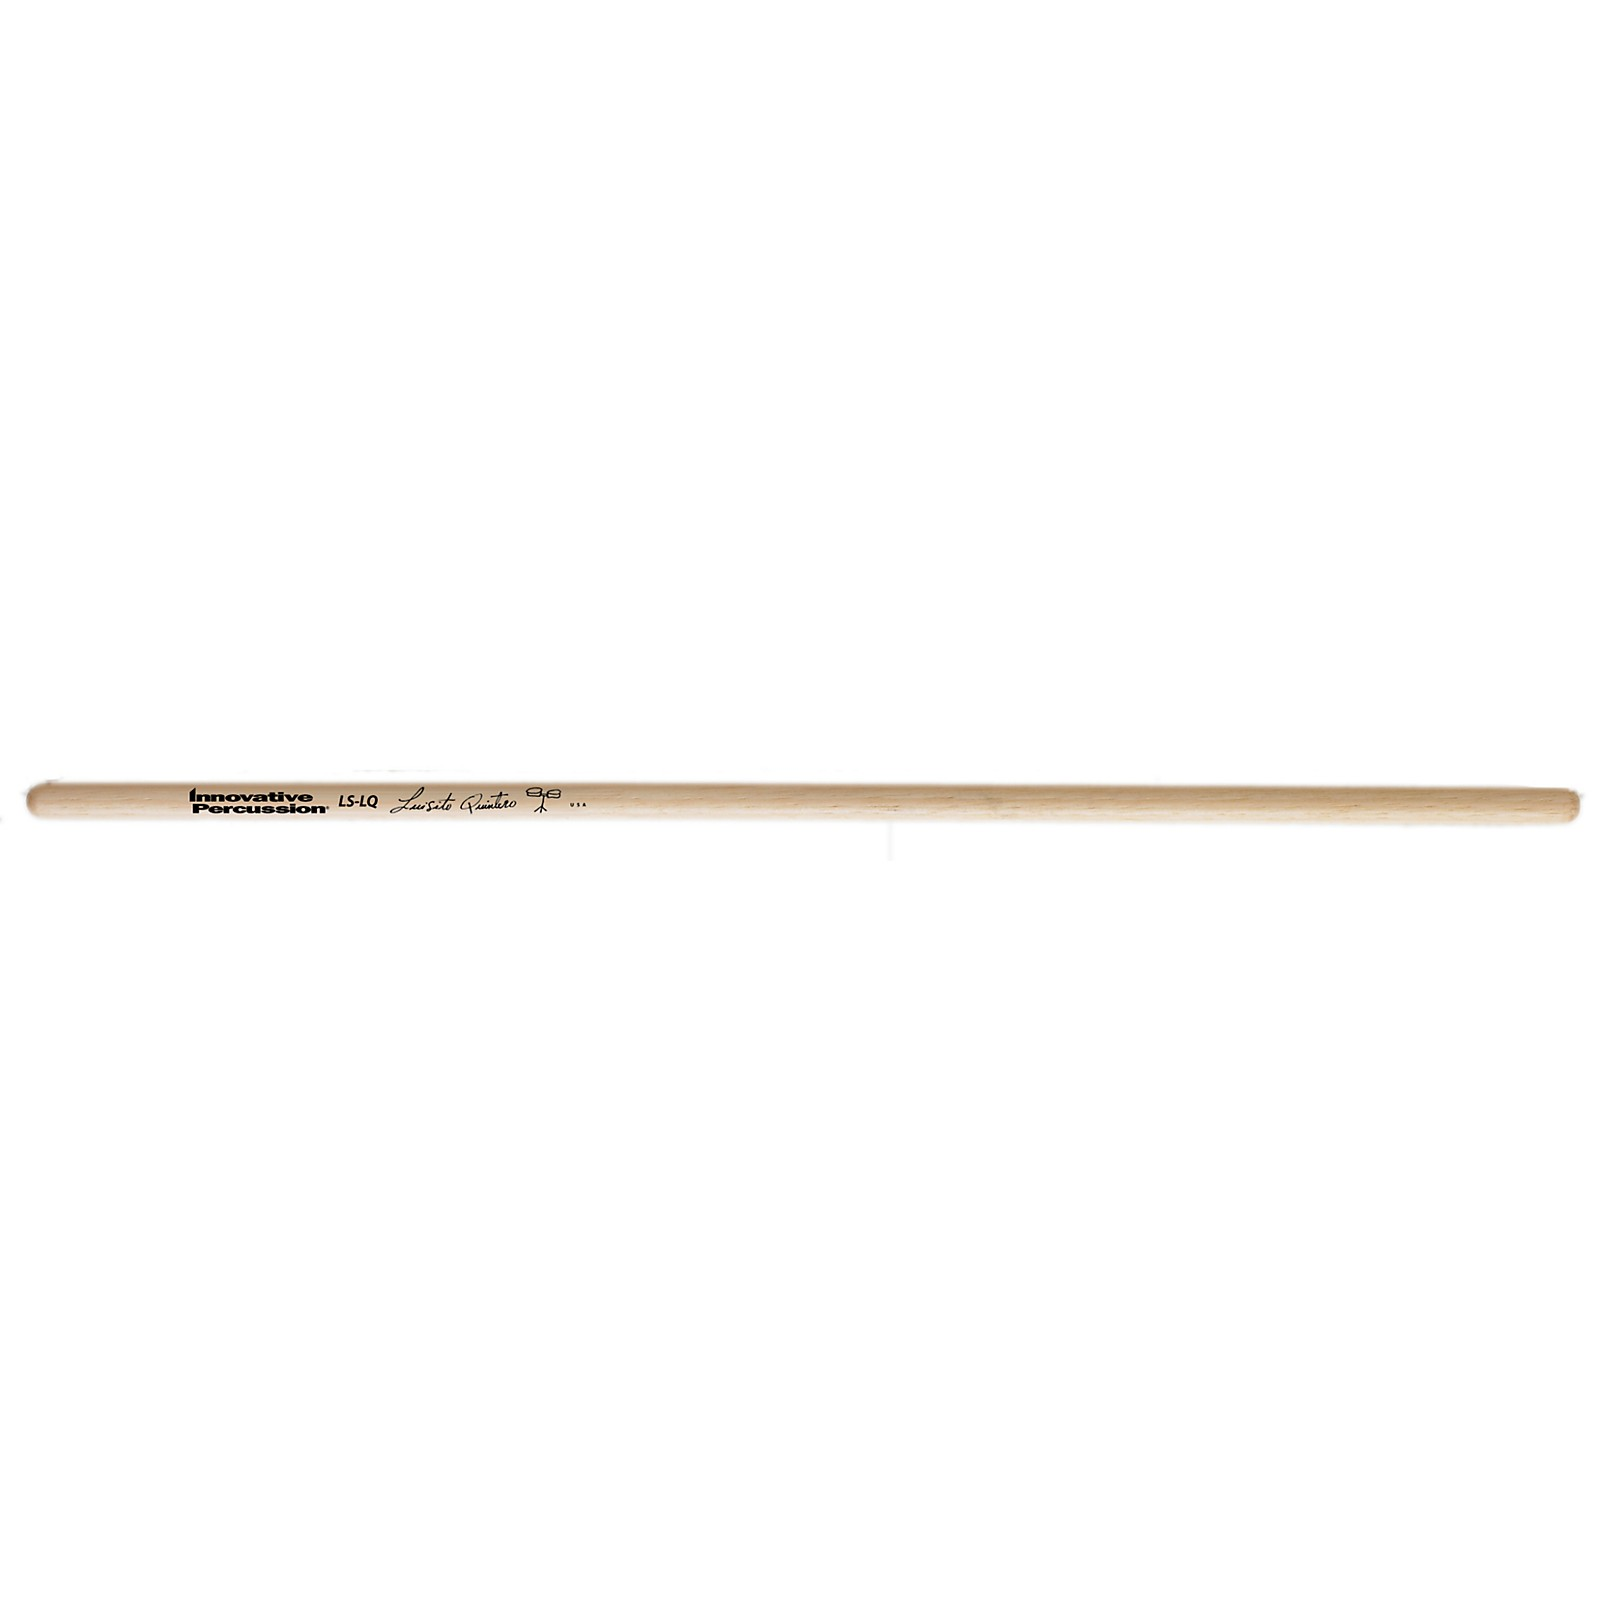 Innovative Percussion Luisito Quintero Timbale Sticks 4-Pack